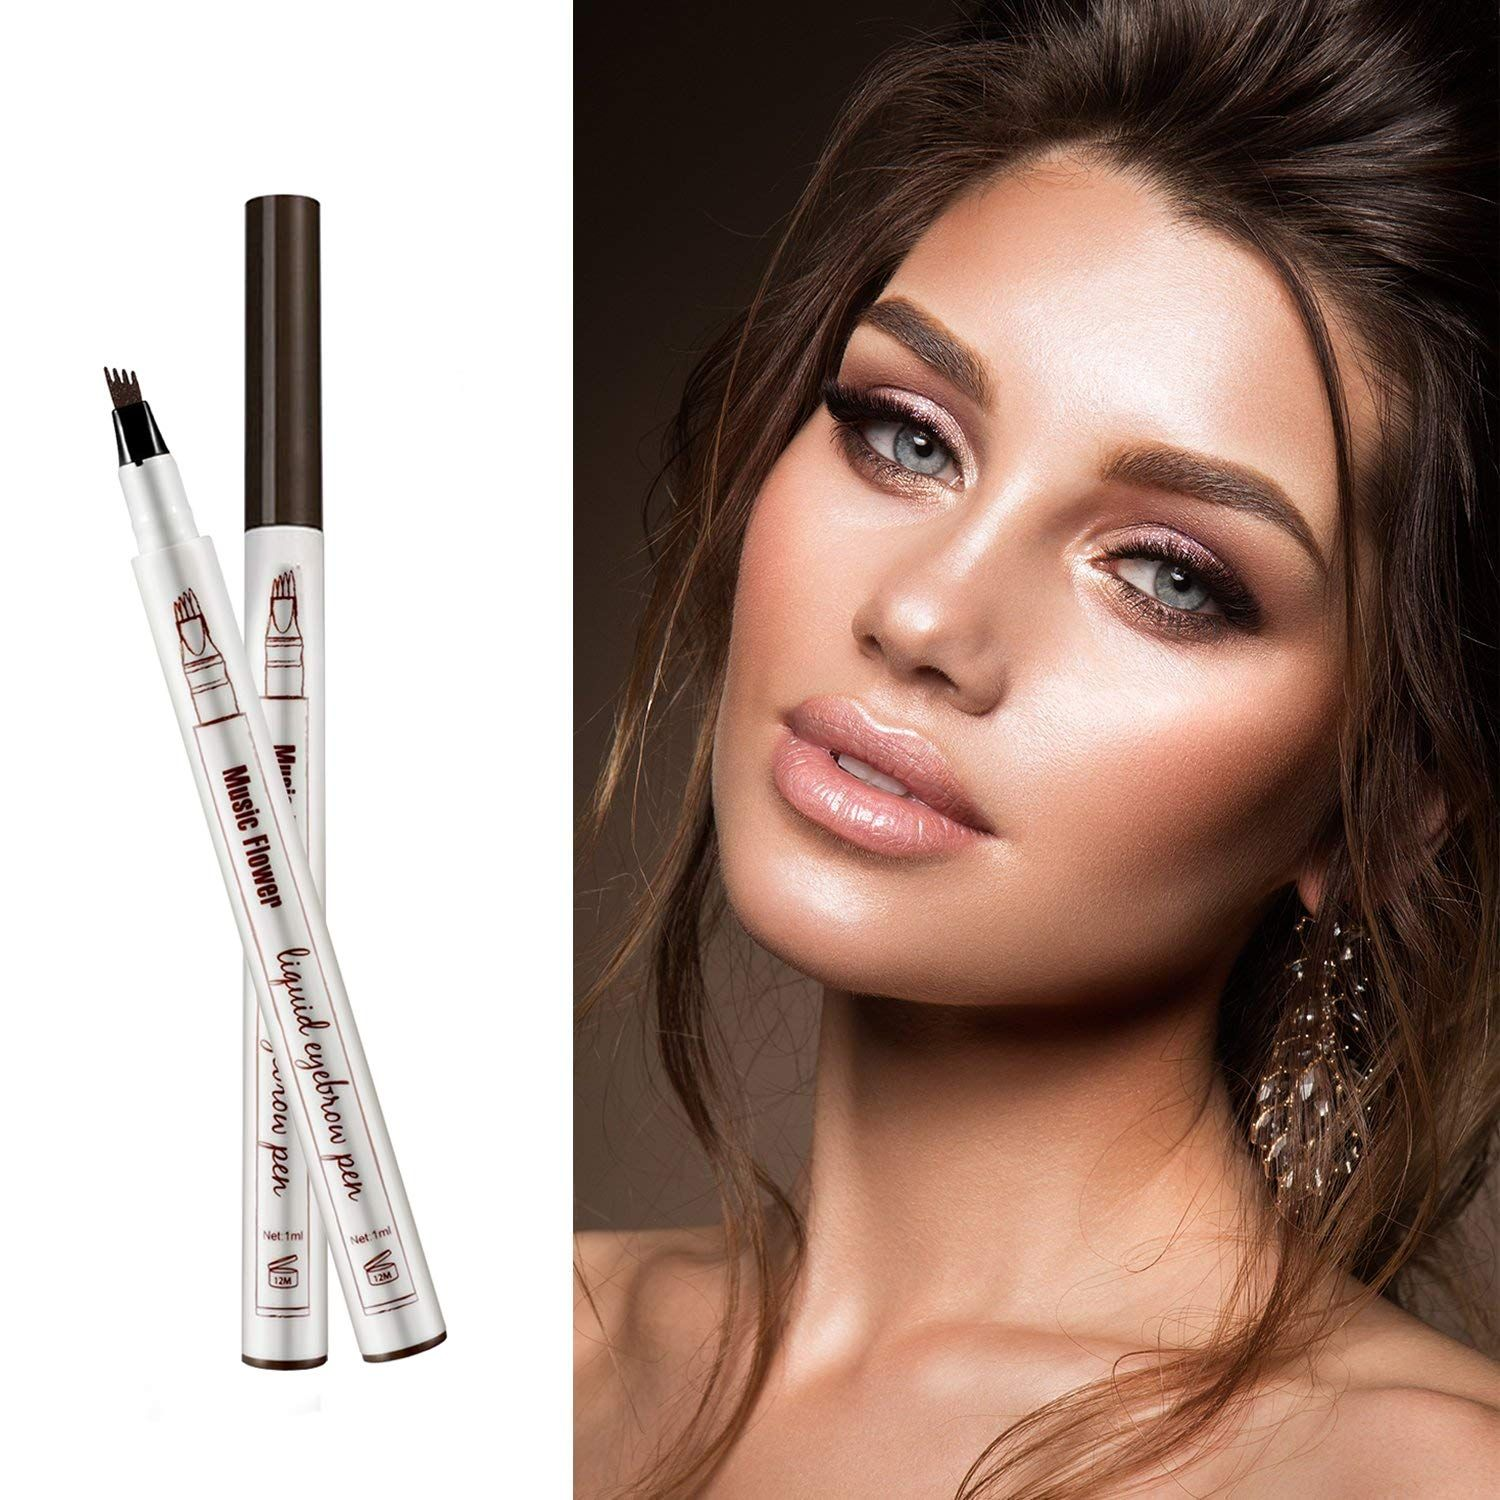 Tattoo Eyebrow Pen Waterproof Ink Gel Tint with Four Tips